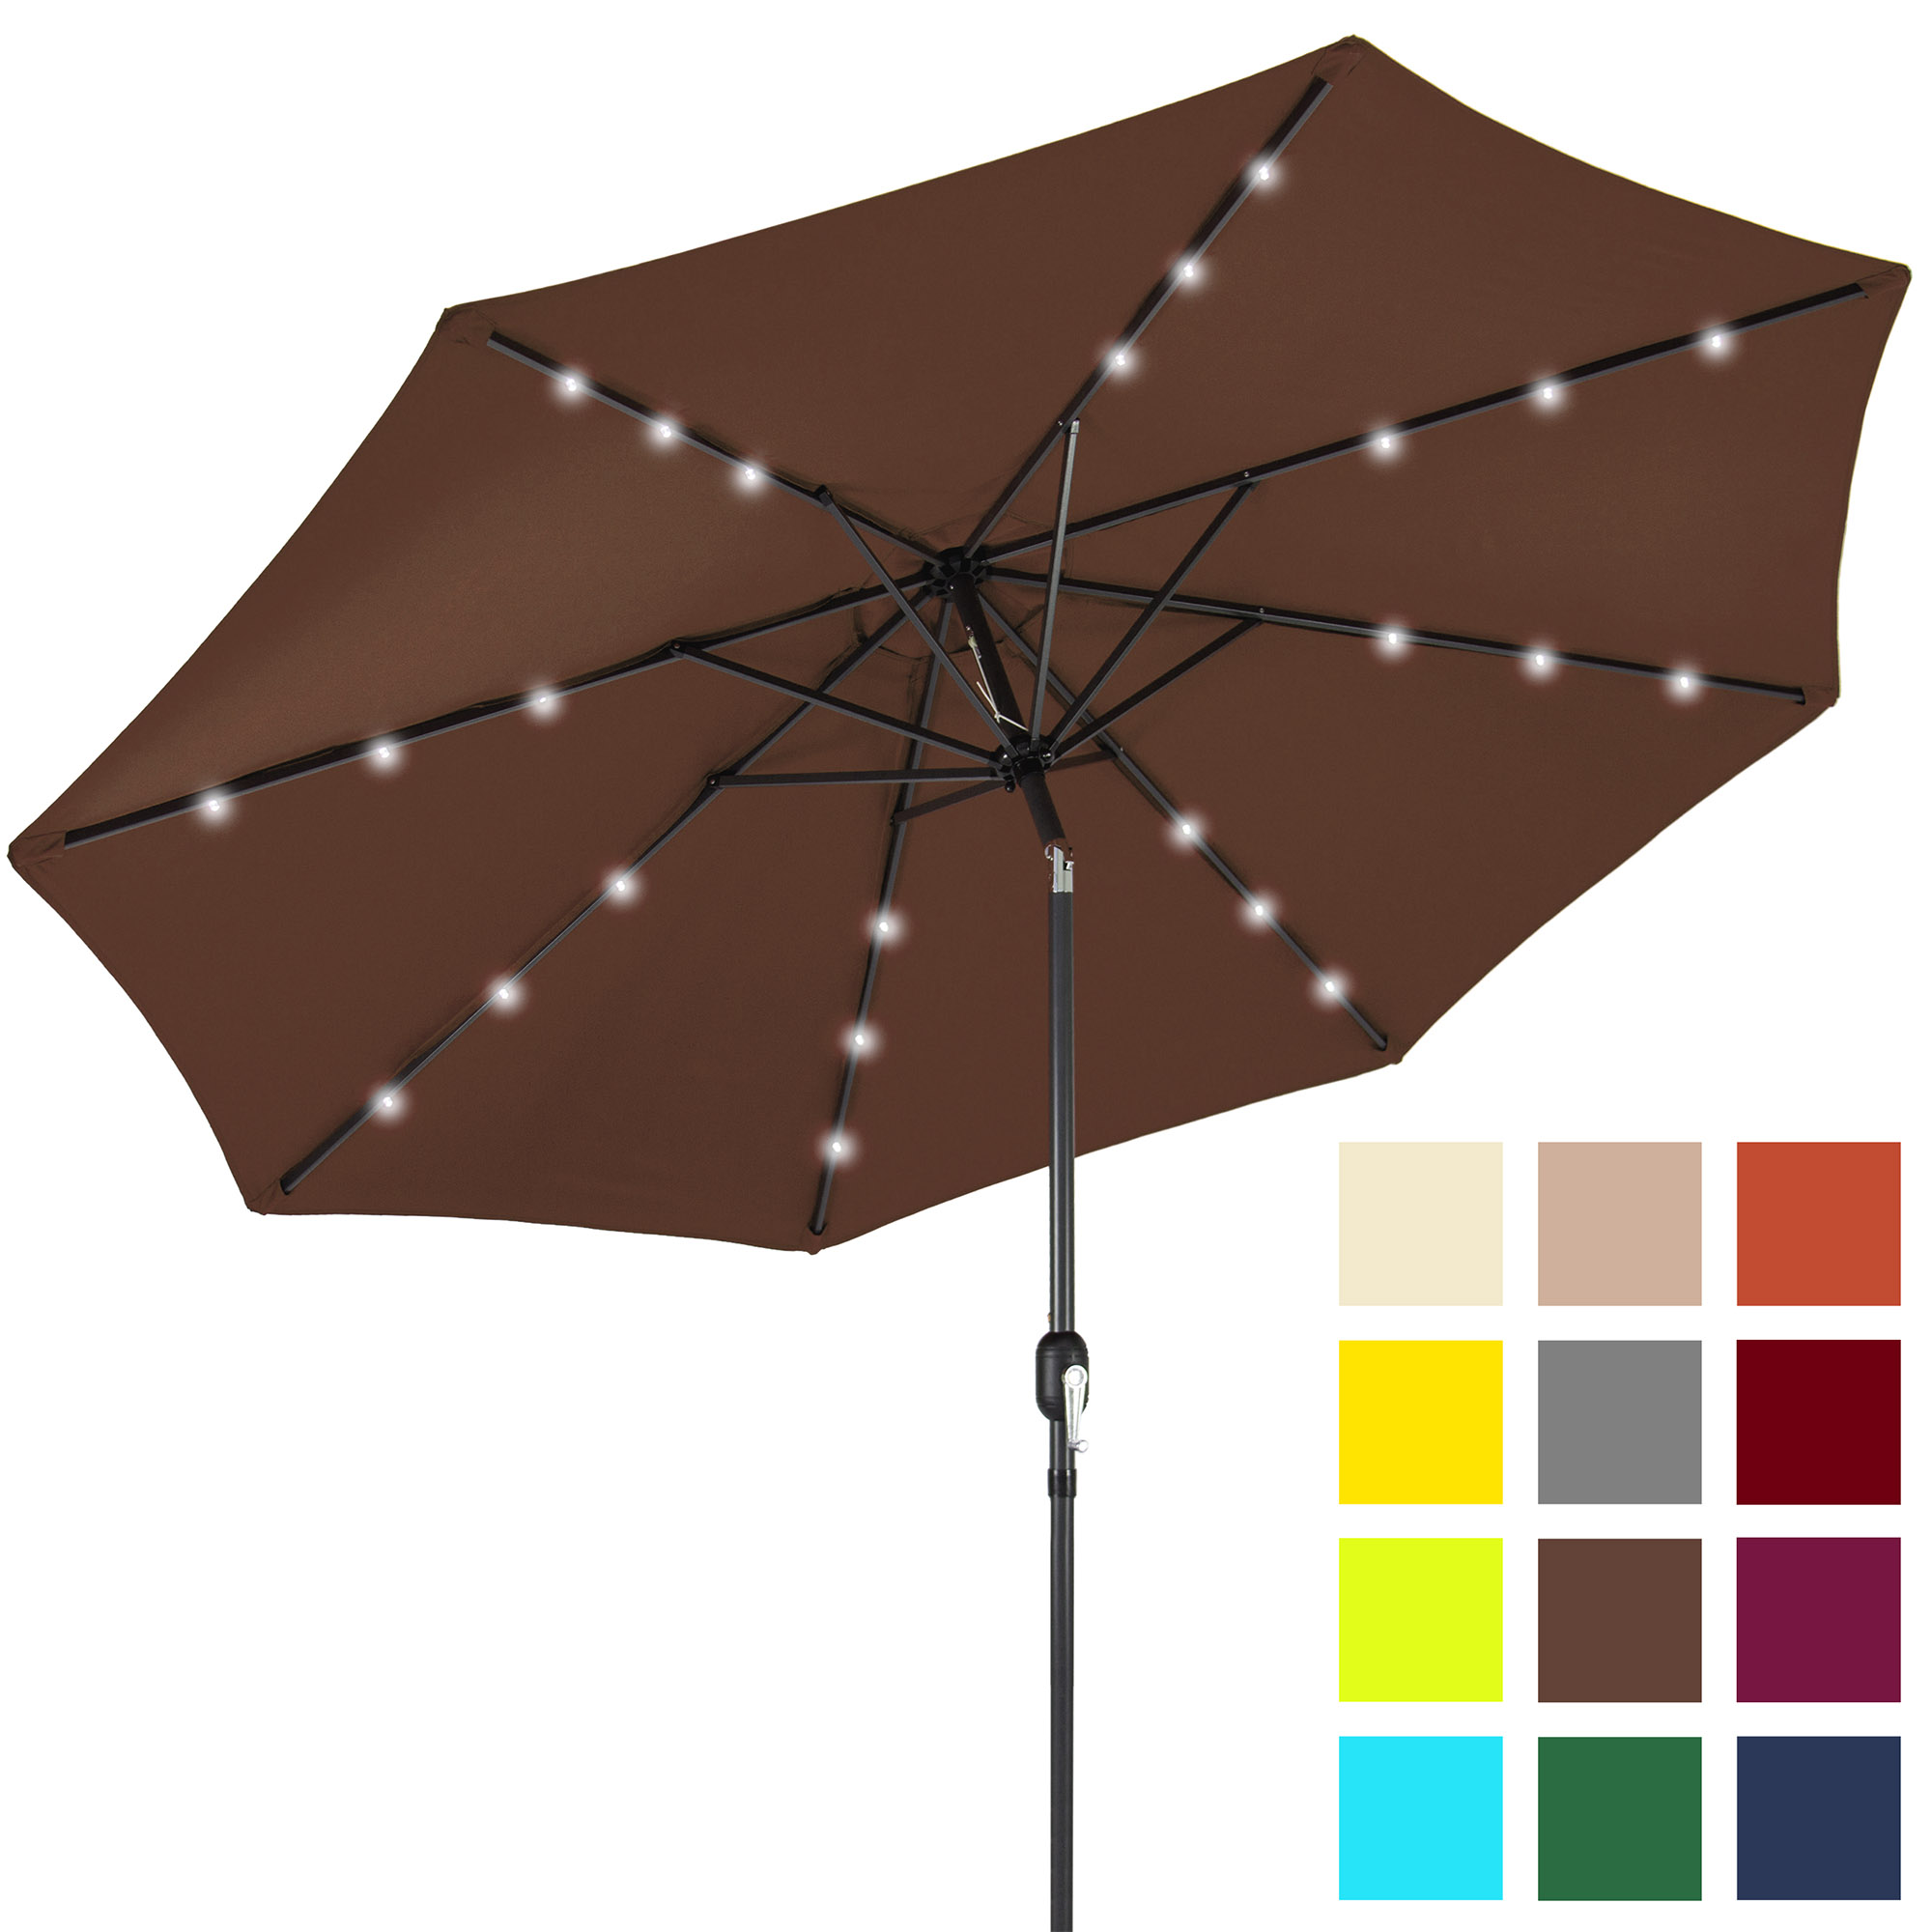 Best Choice Products 10ft Solar LED Lighted Patio Umbrella w/ Tilt Adjustment - Brown